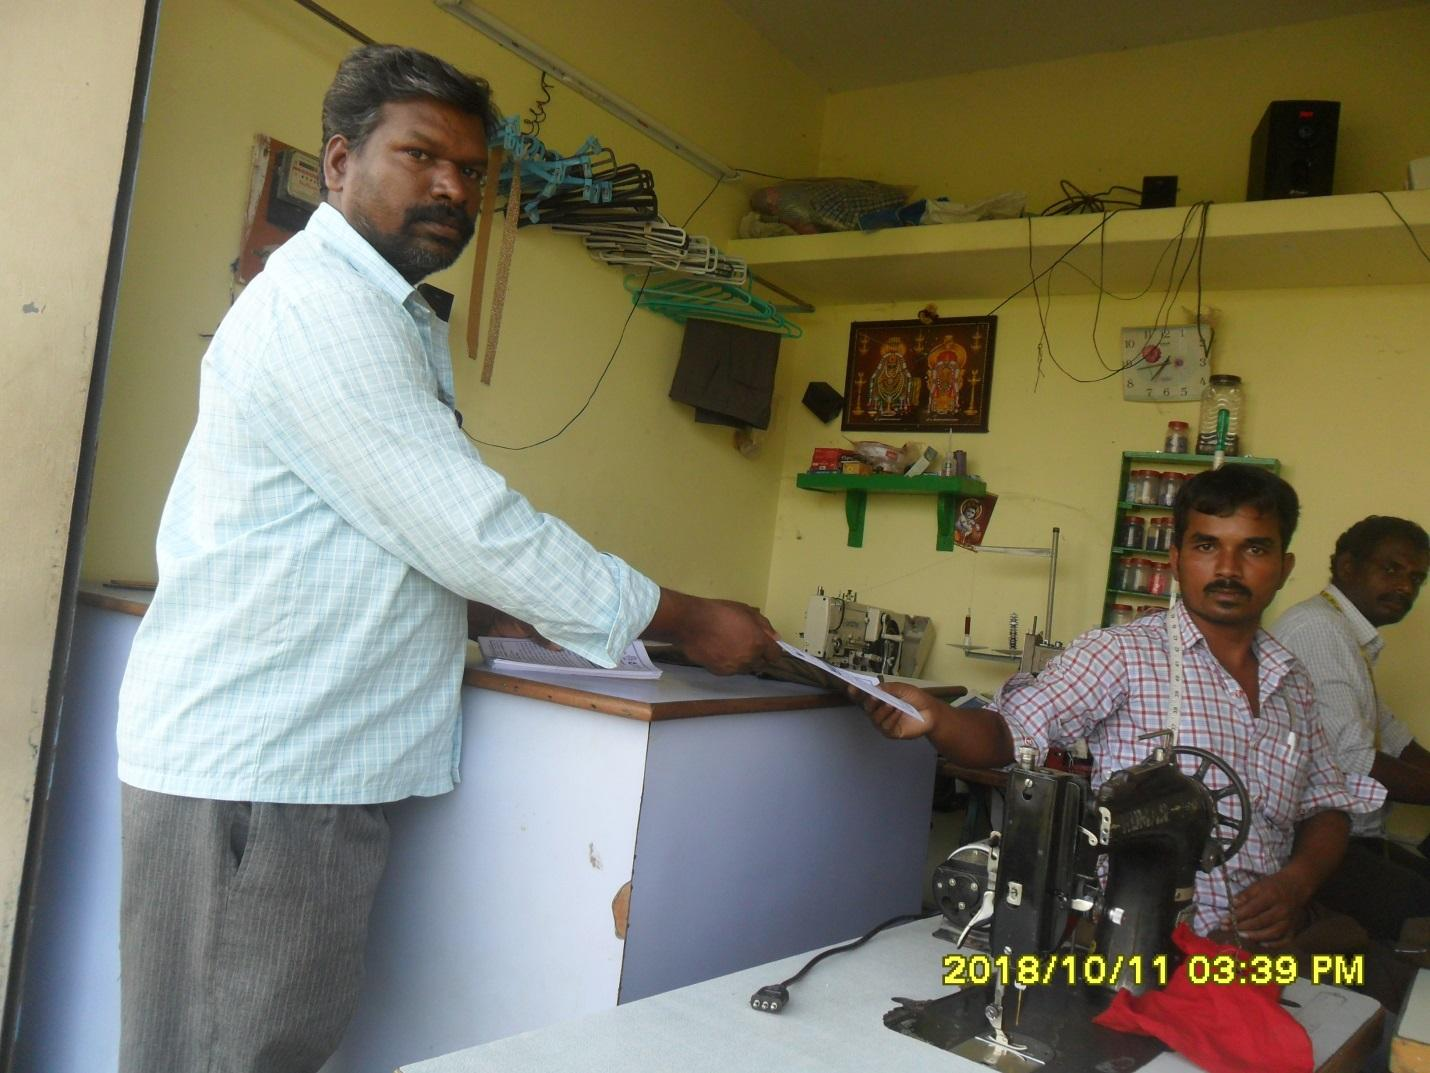 C:\Users\Elcot\Desktop\Outreach Meeting\October\Tiruvannamalai\SAM_0764 - Consumer Tiruvannamalai.JPG